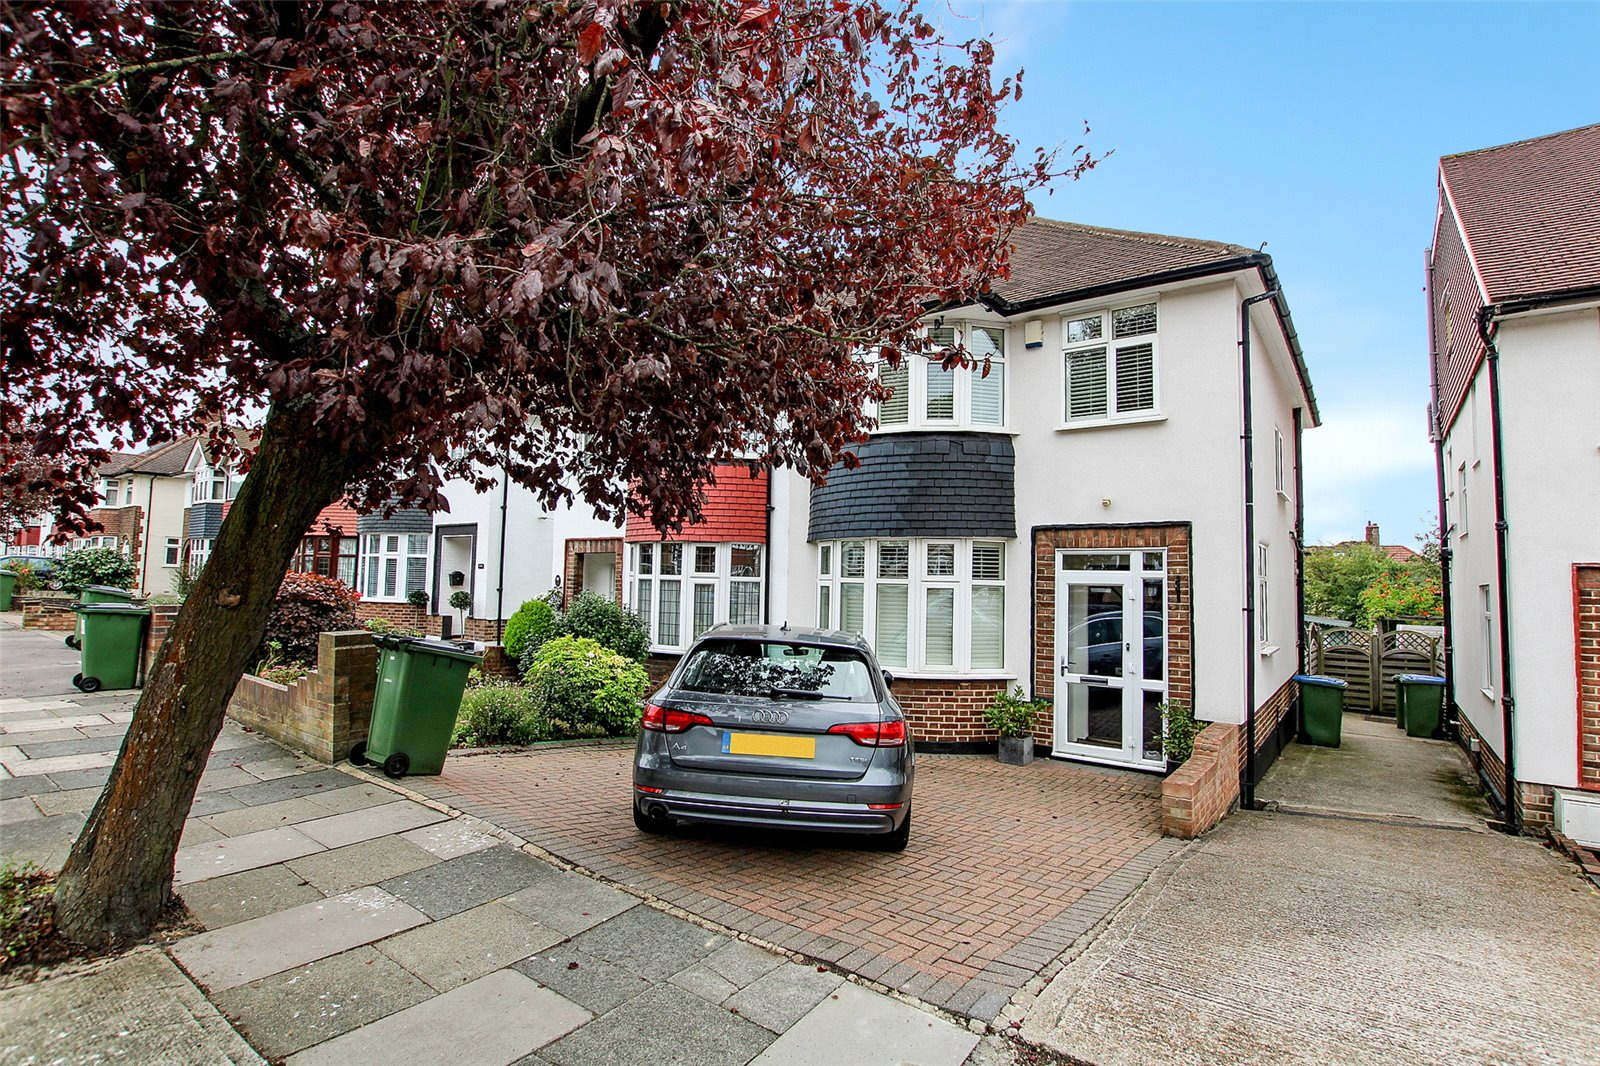 Crookston Road, Eltham, SE9